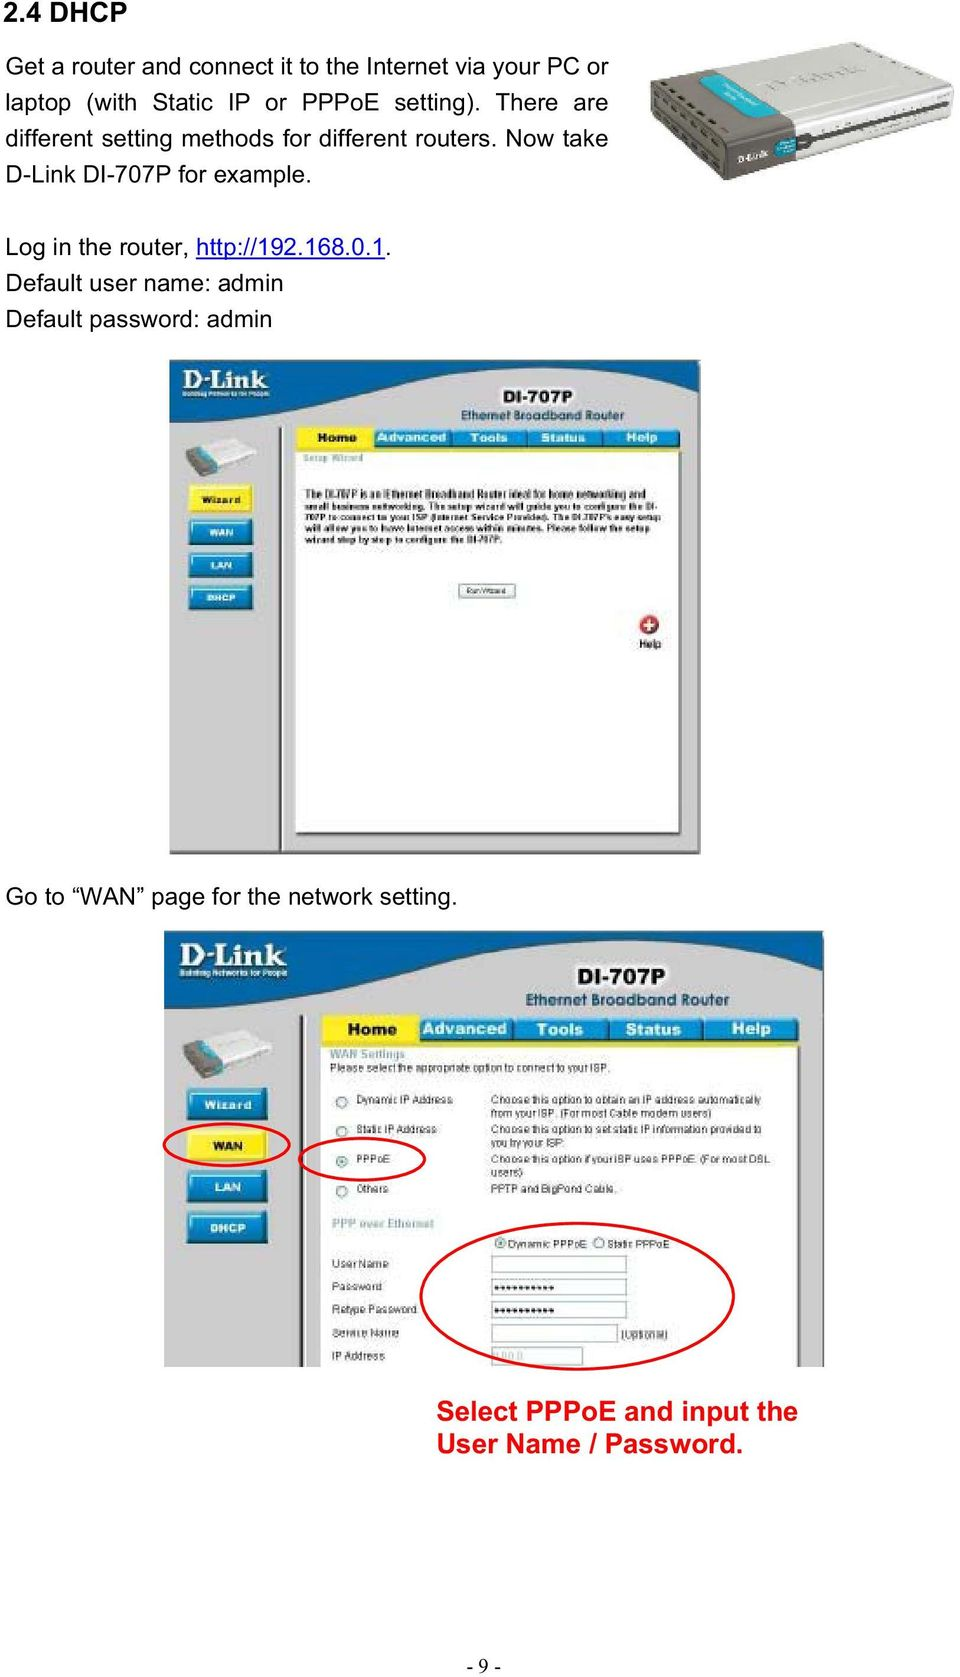 Now take D-Link DI-707P for example. Log in the router, http://19